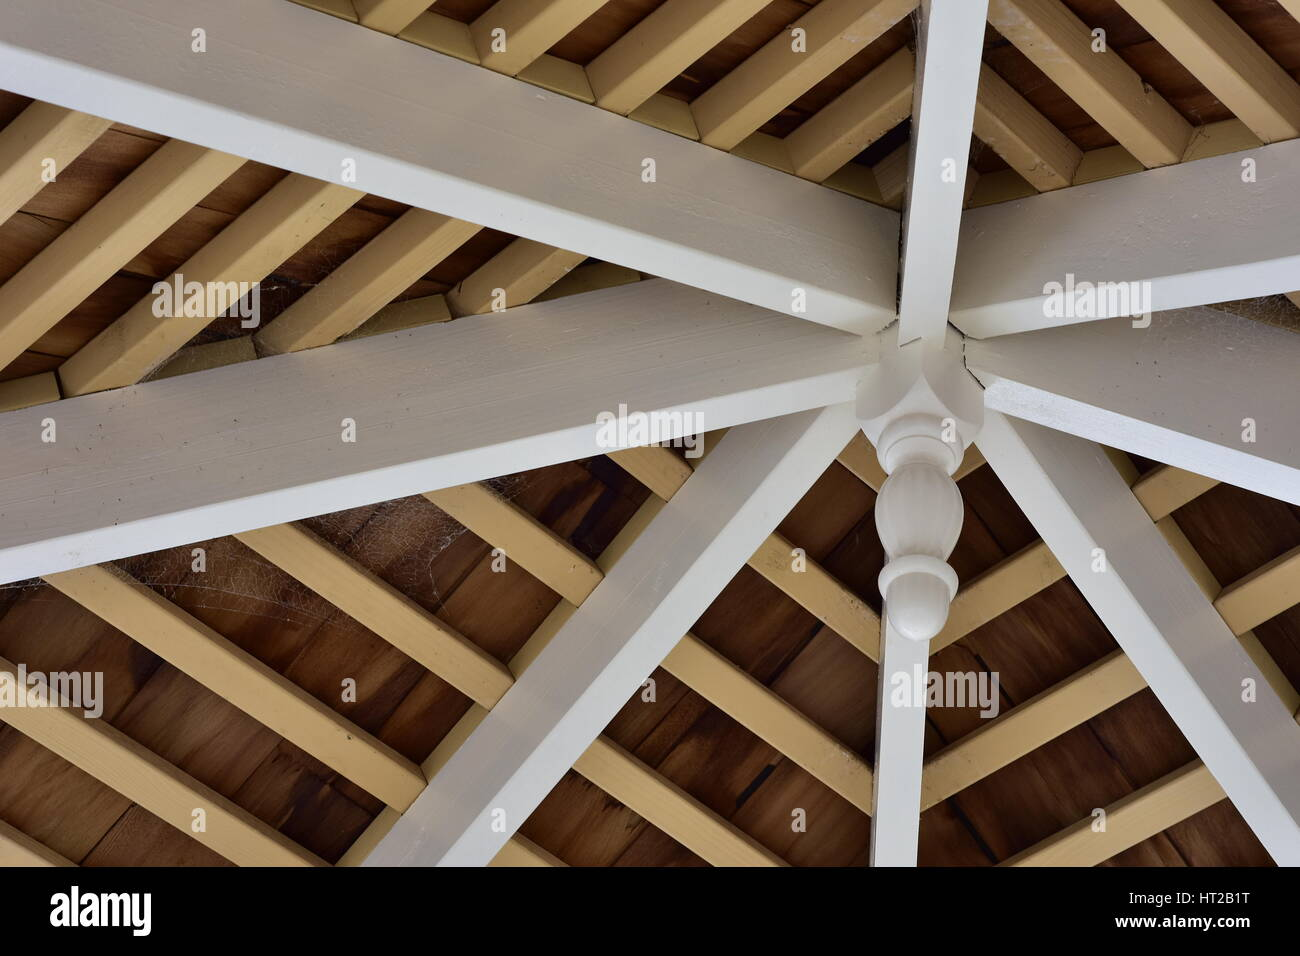 Rustic wooden ceiling showing horizontal beams and rows of wooden shingle. Stock Photo